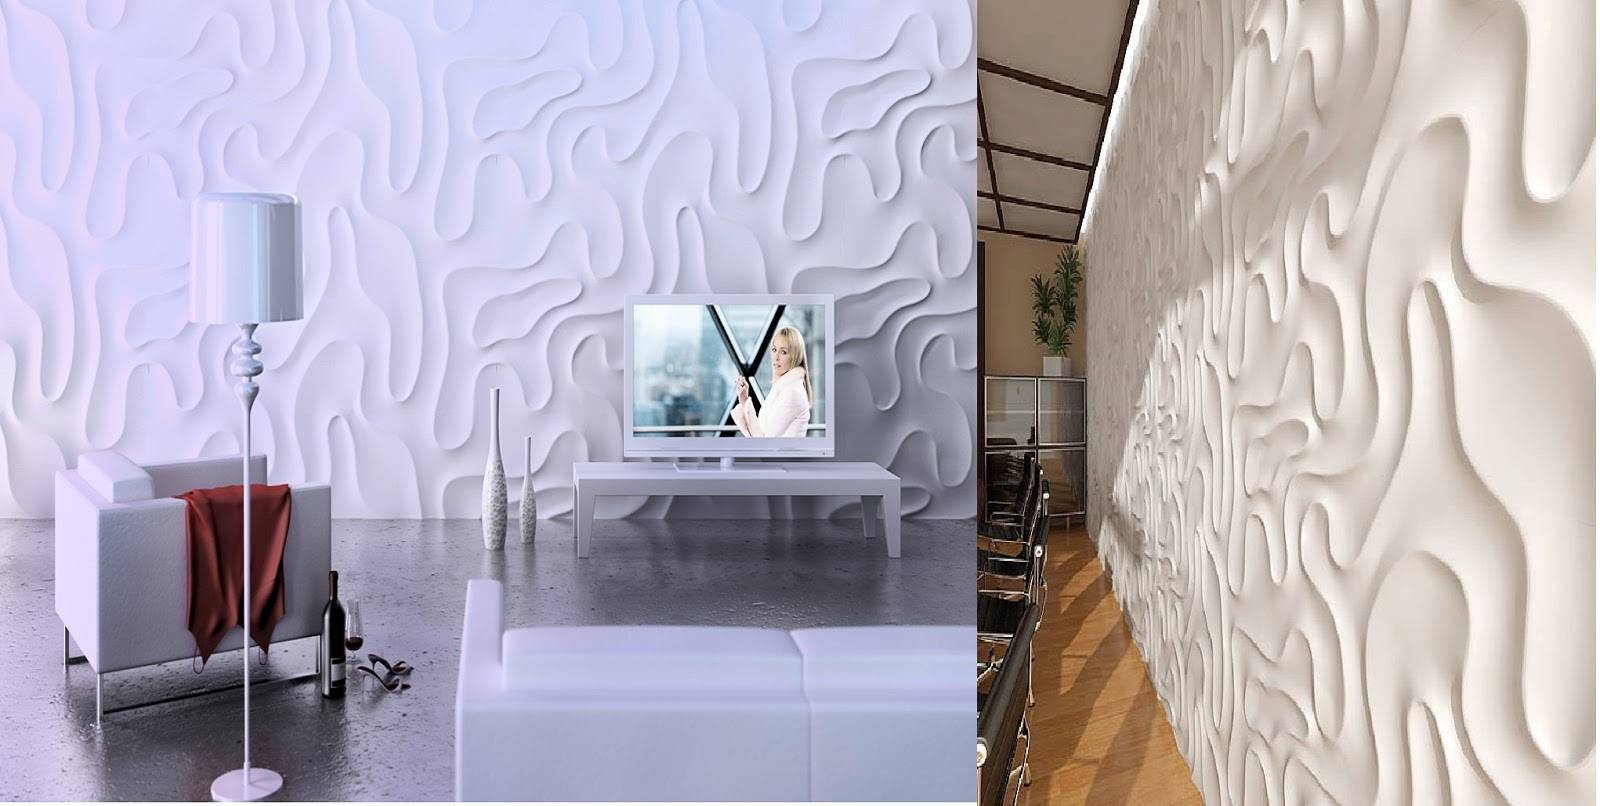 Decorative 3D Wall Panels For Unusual Wall Decor 2017 In Most Up To Date Painting 3D Wall Panels (View 9 of 20)